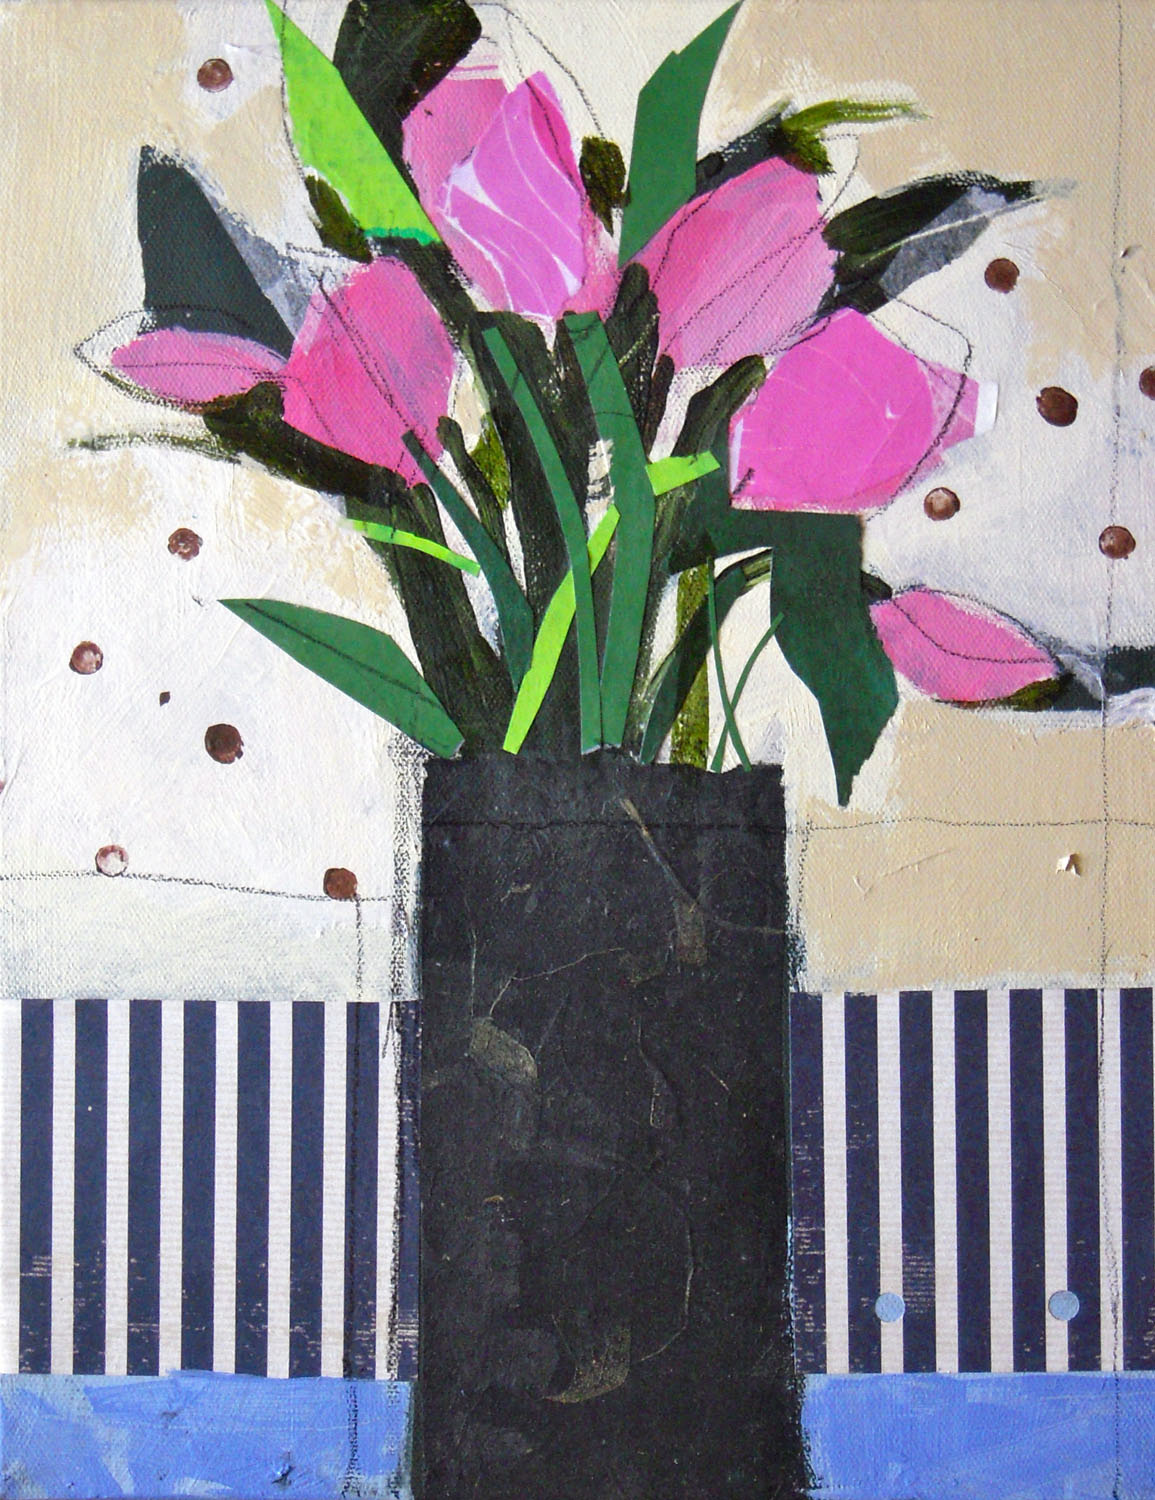 Pink Tulips - Nancy Barch